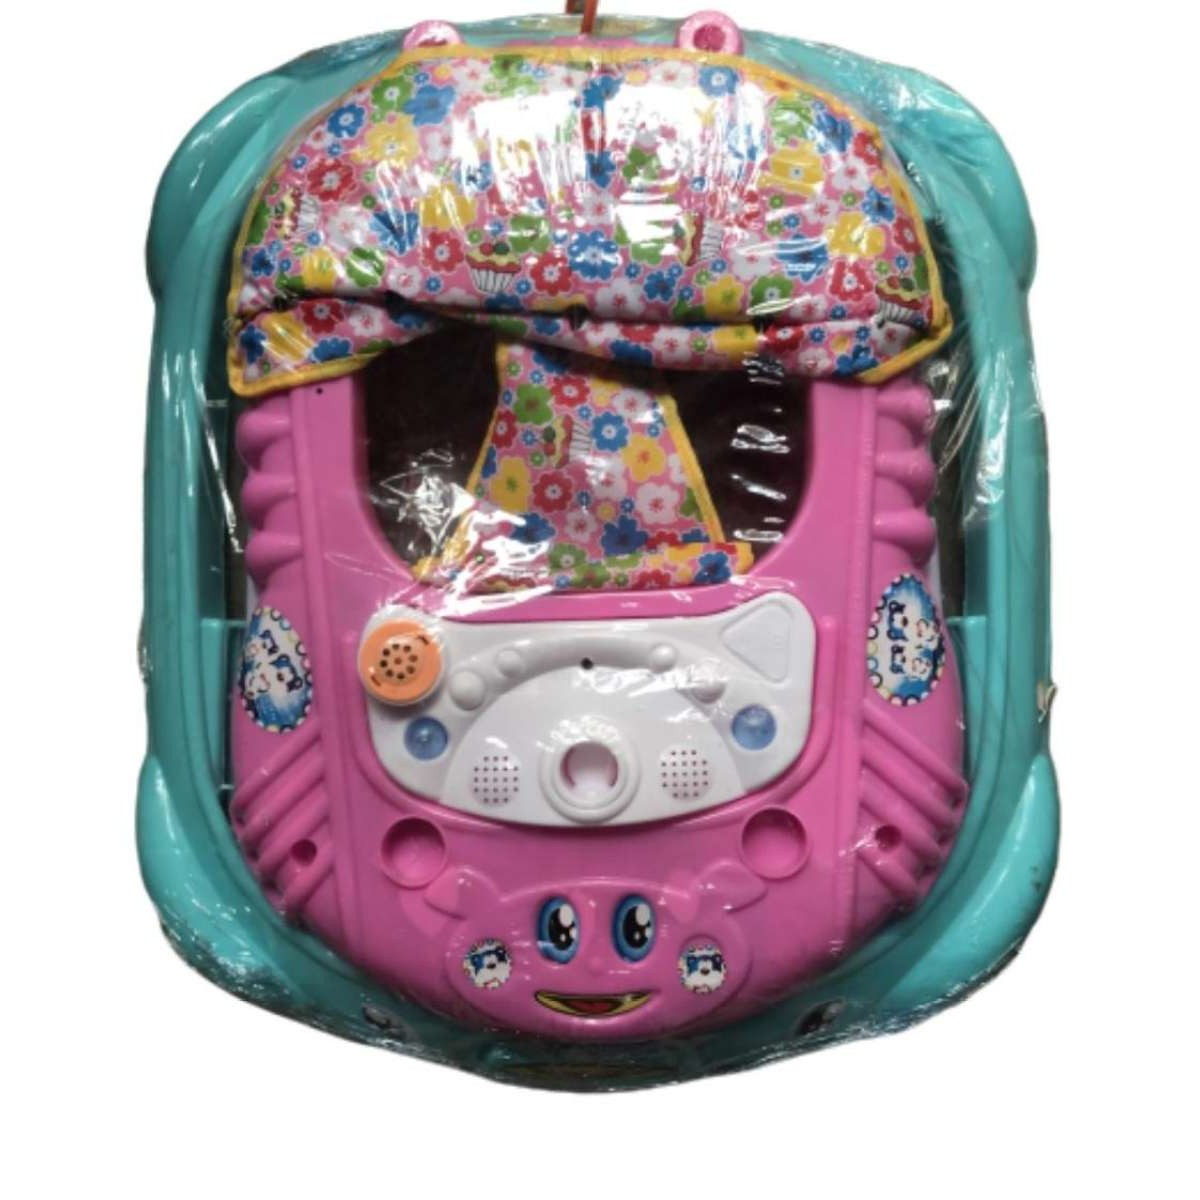 Baby walker colorful and music Walker for Kids - Multicolor